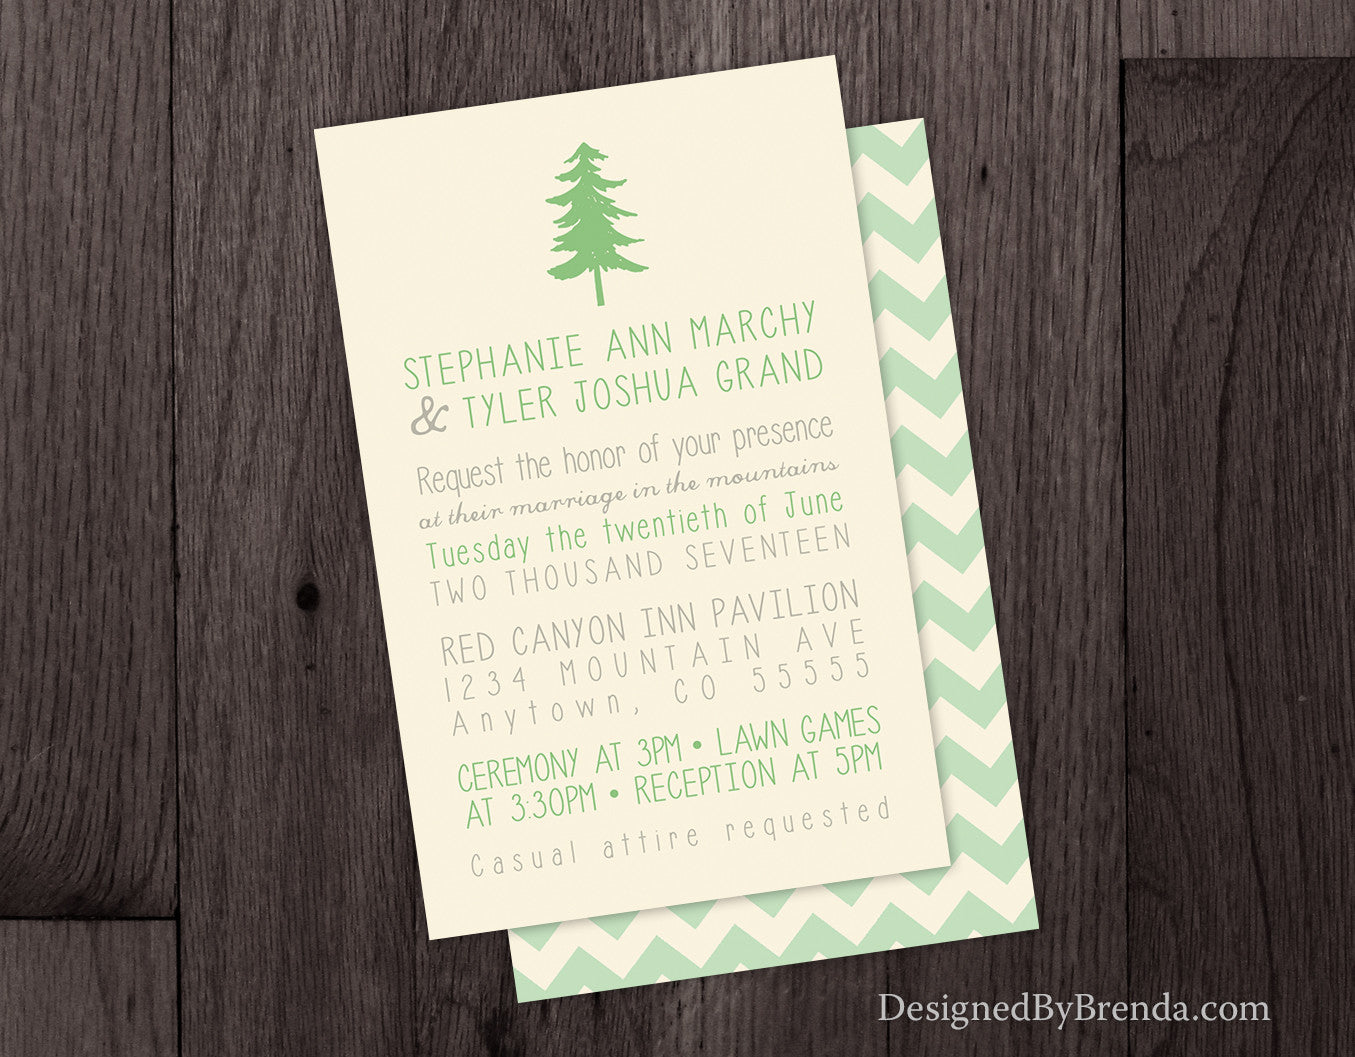 Tree Wedding Invitation with Chevron Back - Nature & Outdoors ...